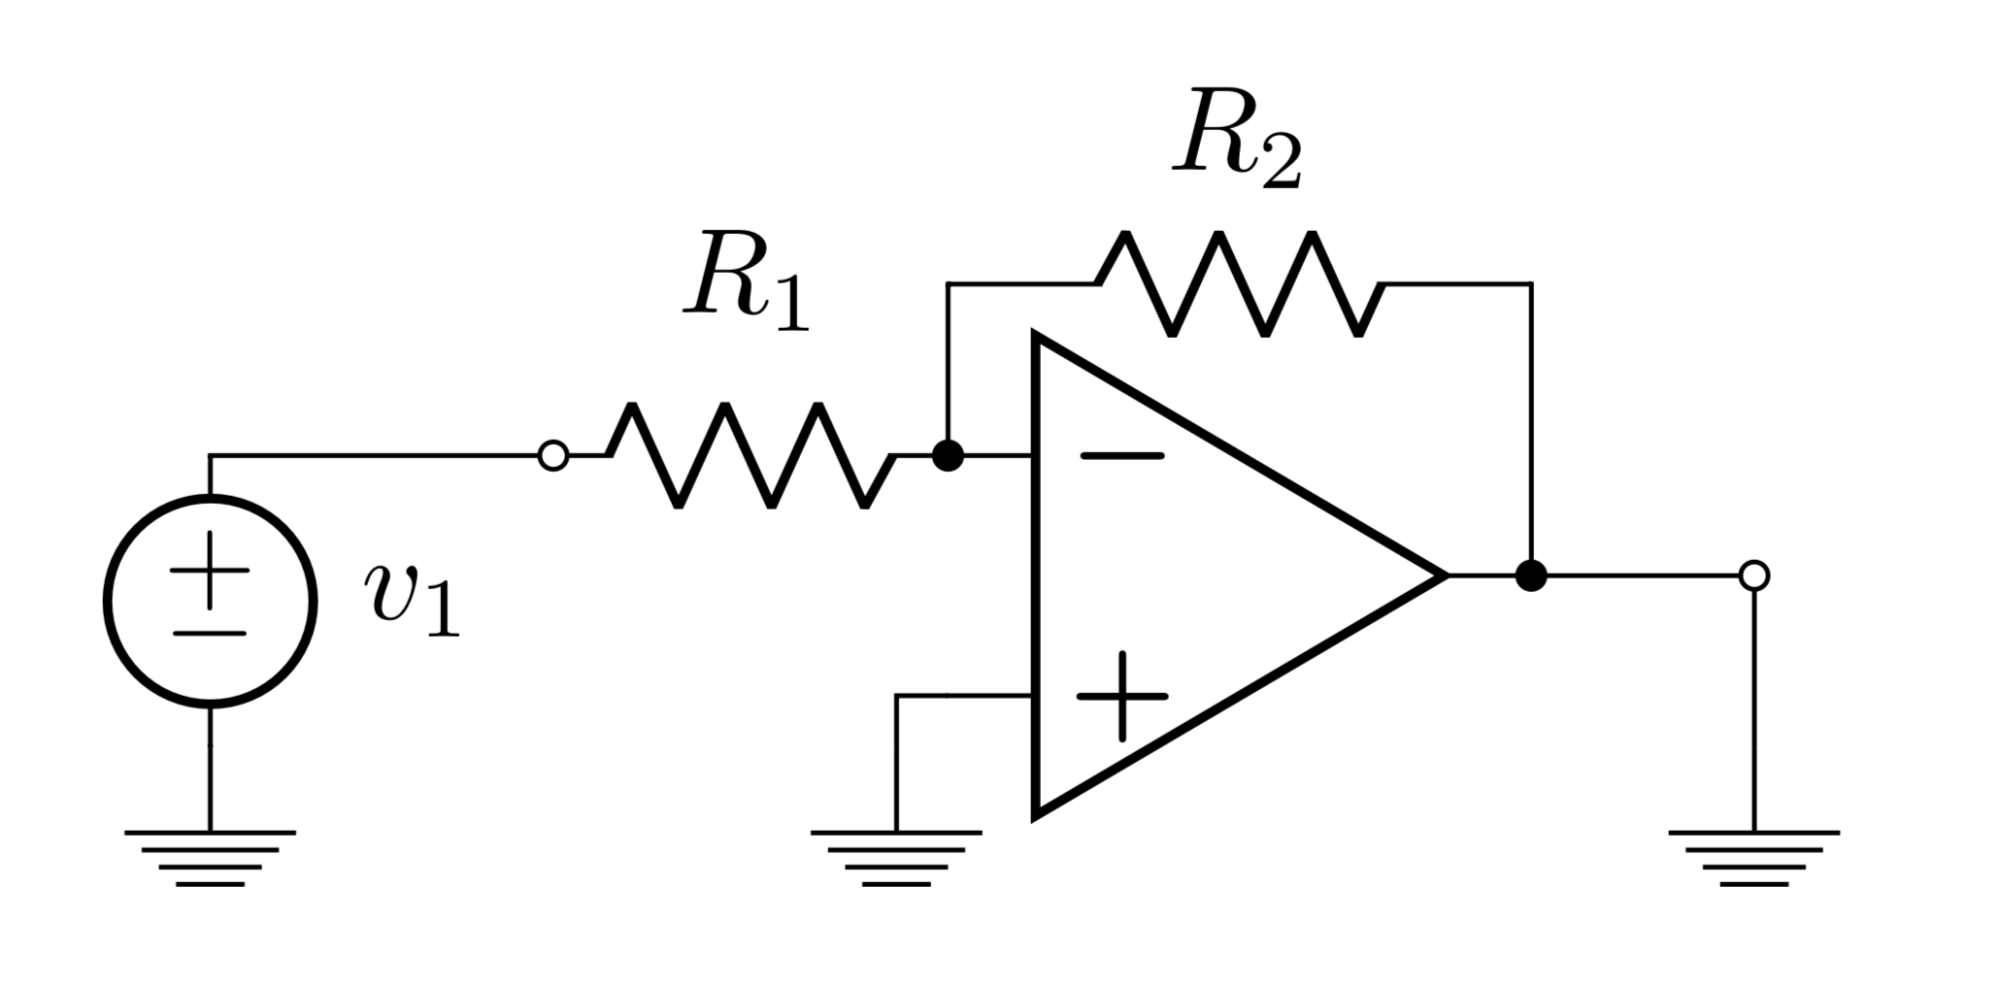 hight resolution of  begin circuitikz ctikzset bipoles length 1cm draw 0 0 node op amp opamp opamp to r l r 1 o 2 0 35 3 0 35 to v v 1 3